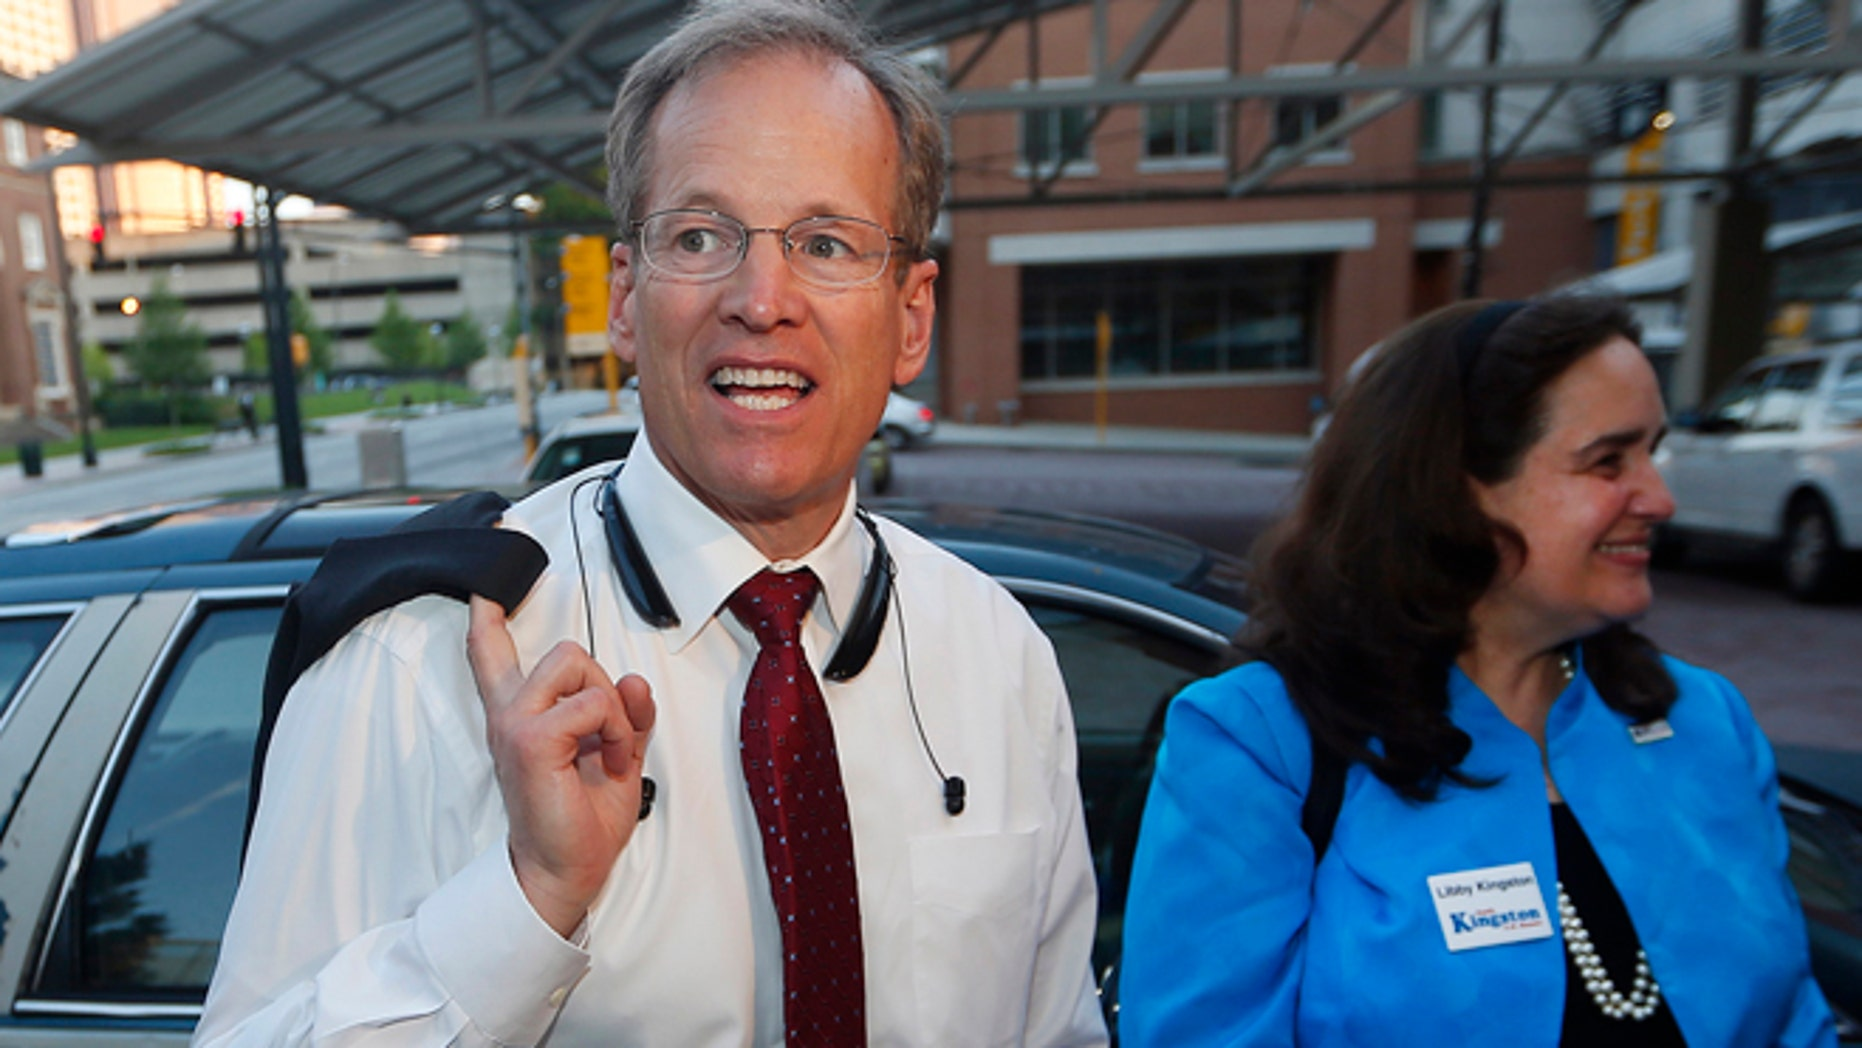 May 20, 2014: Georgia Republican Senate candidate Jack Kingston and his wife Libby arrive for an election-night watch party in Atlanta.